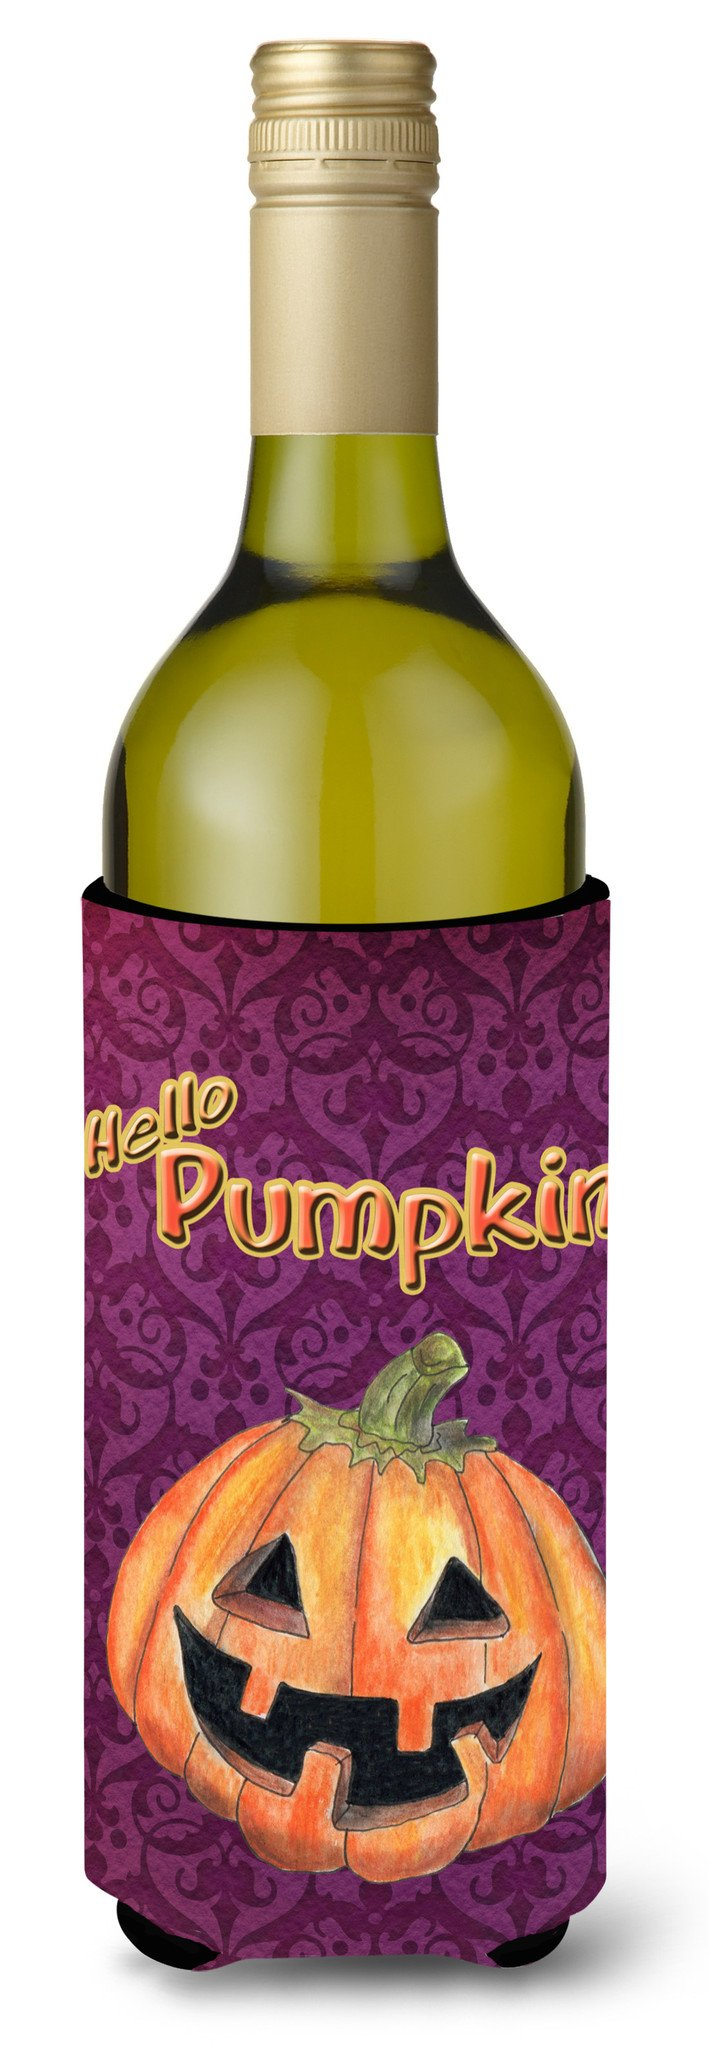 Hello Pumpkin Halloween Wine Bottle Beverage Insulator Beverage Insulator Hugger by Caroline's Treasures